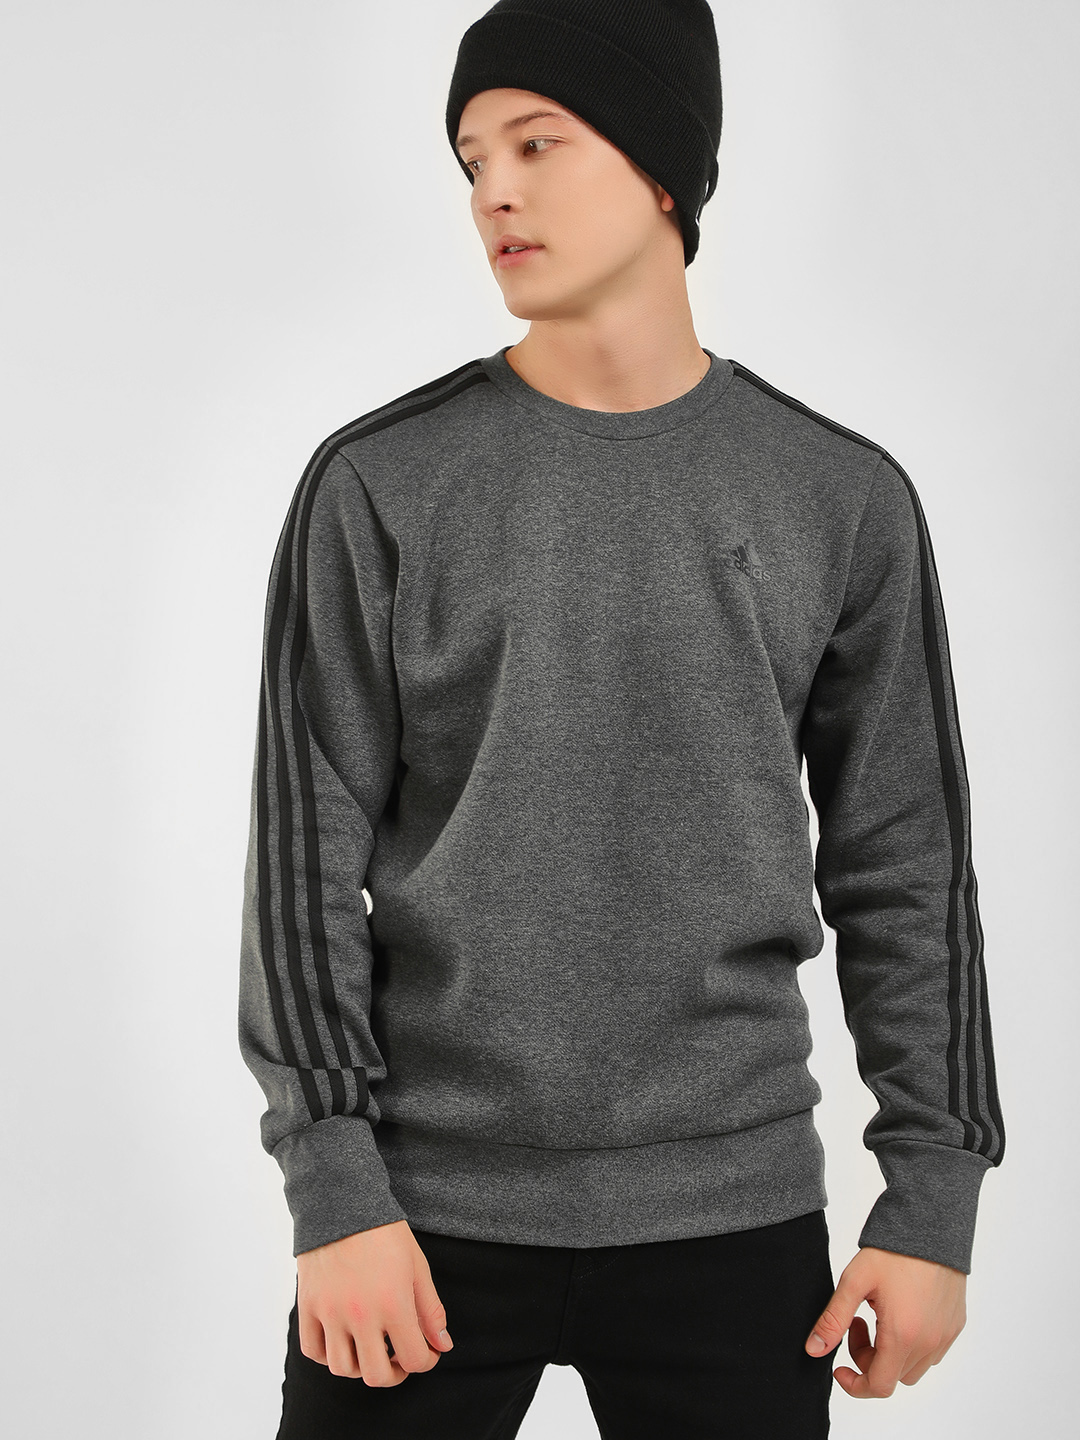 Adidas Grey Ess 3 Stripe Sweatshirt 1